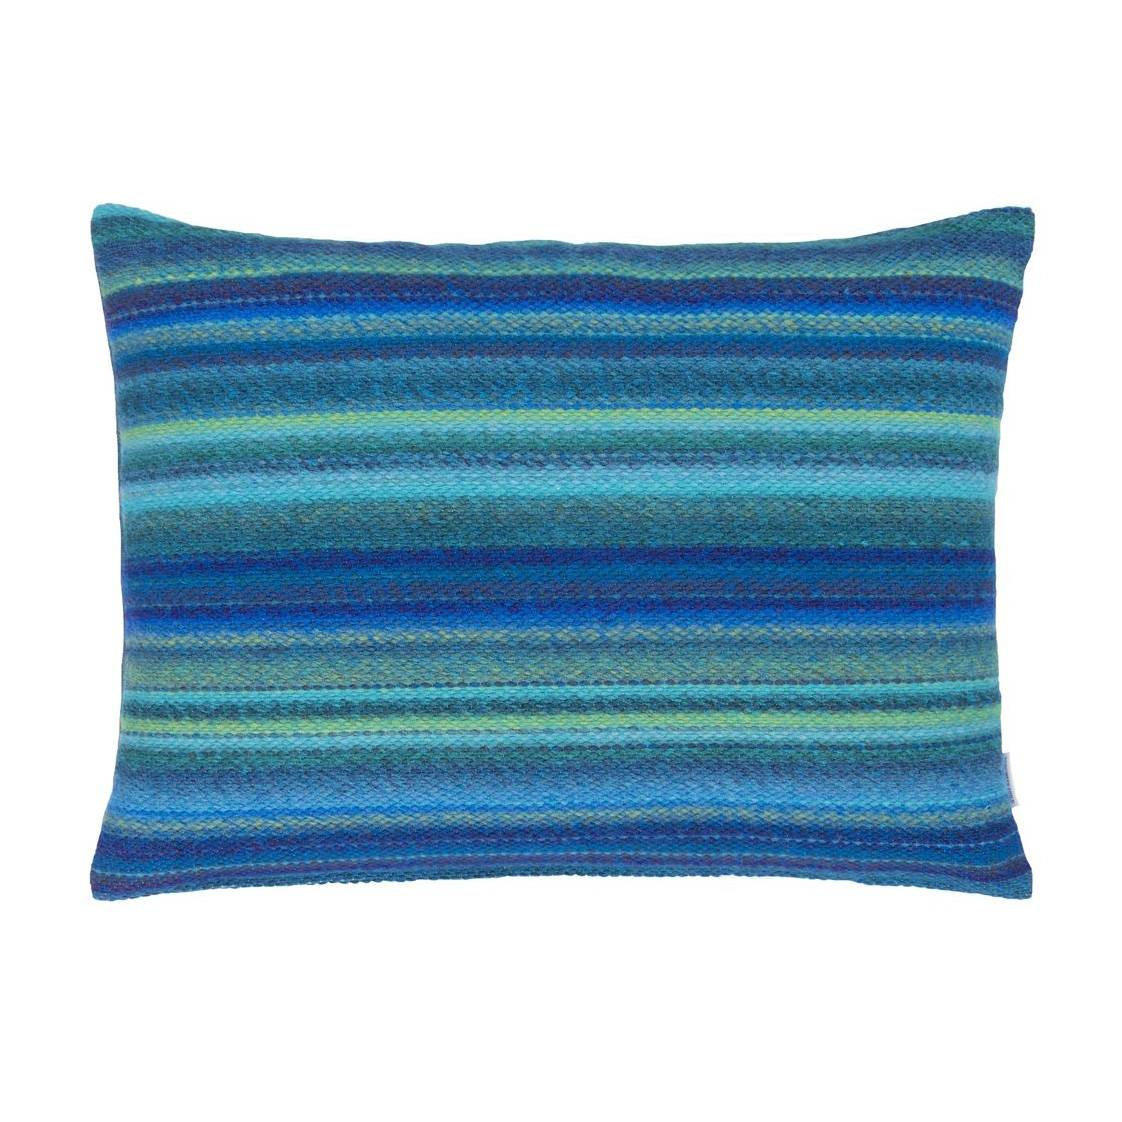 Designers Guild Turrill Turquoise Tyyny 60x45cm